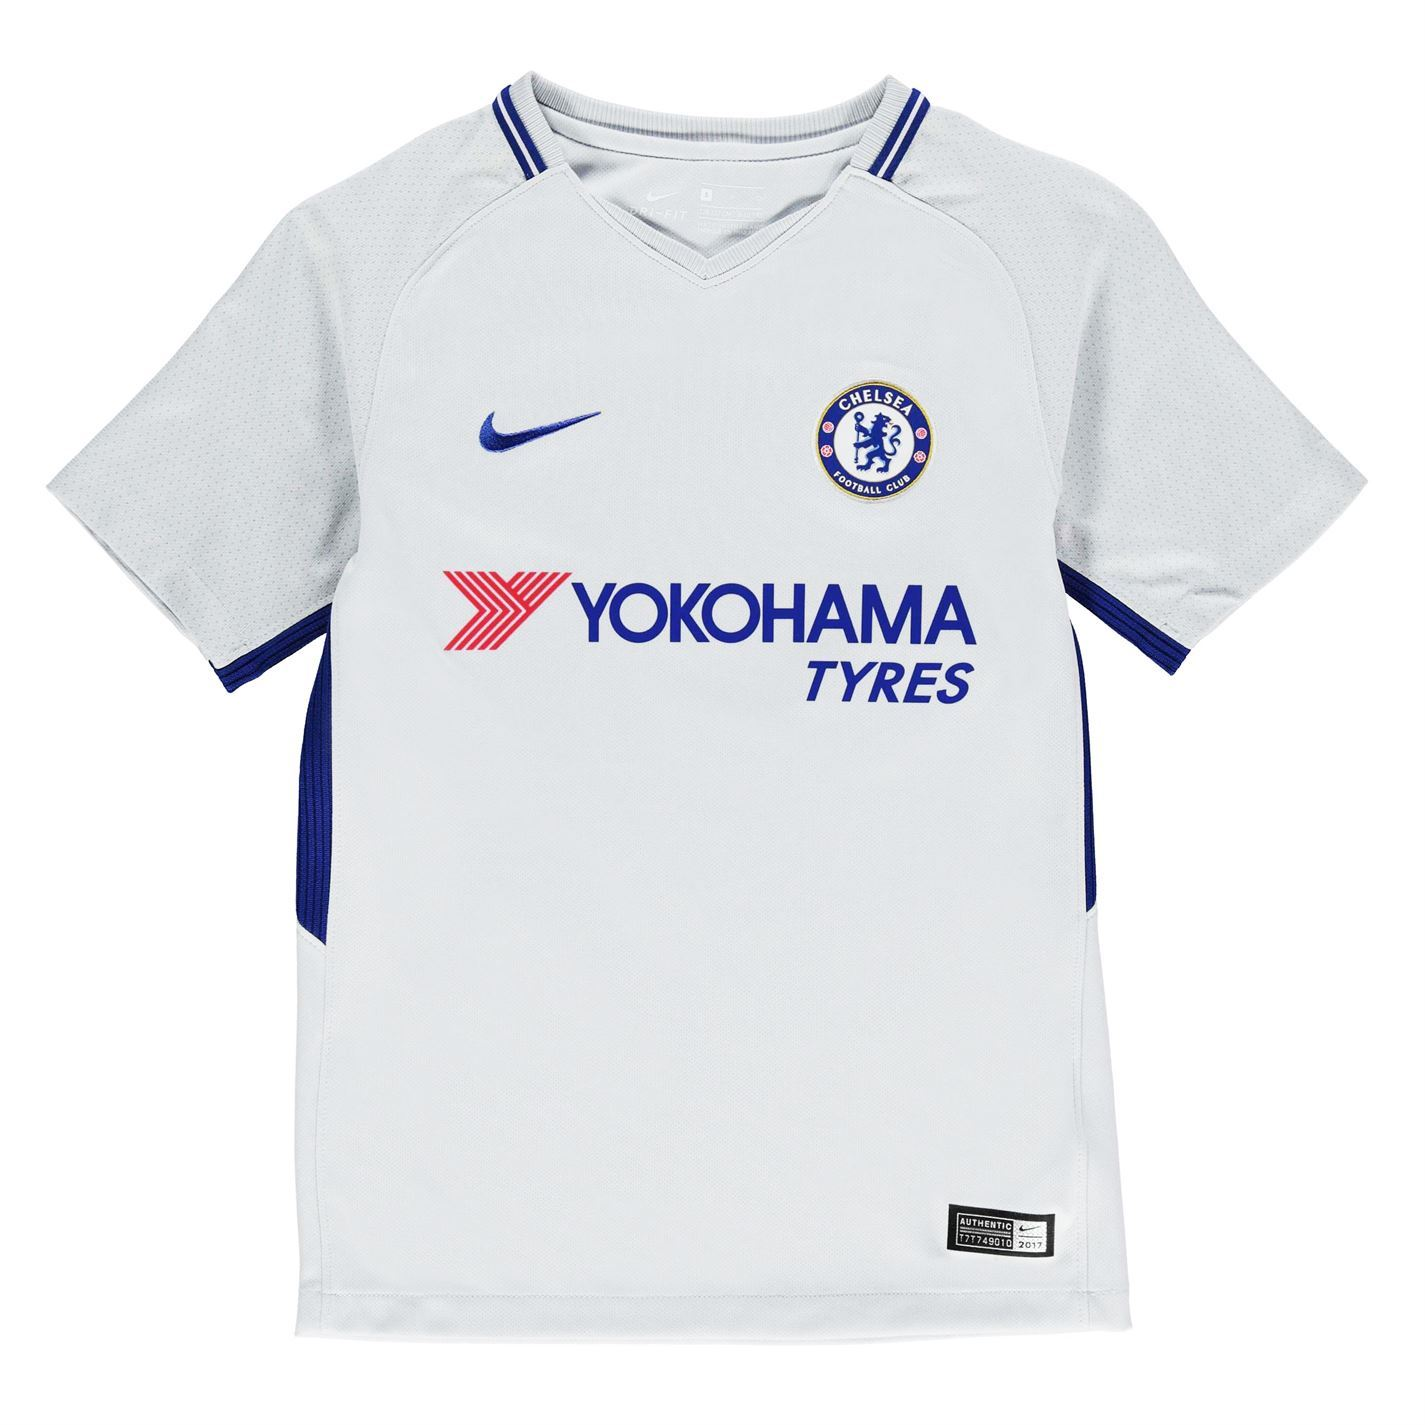 sale retailer c6f23 8dffc Details about Nike Chelsea Away Jersey 2017 2018 Juniors White Football  Soccer Fan Shirt Top